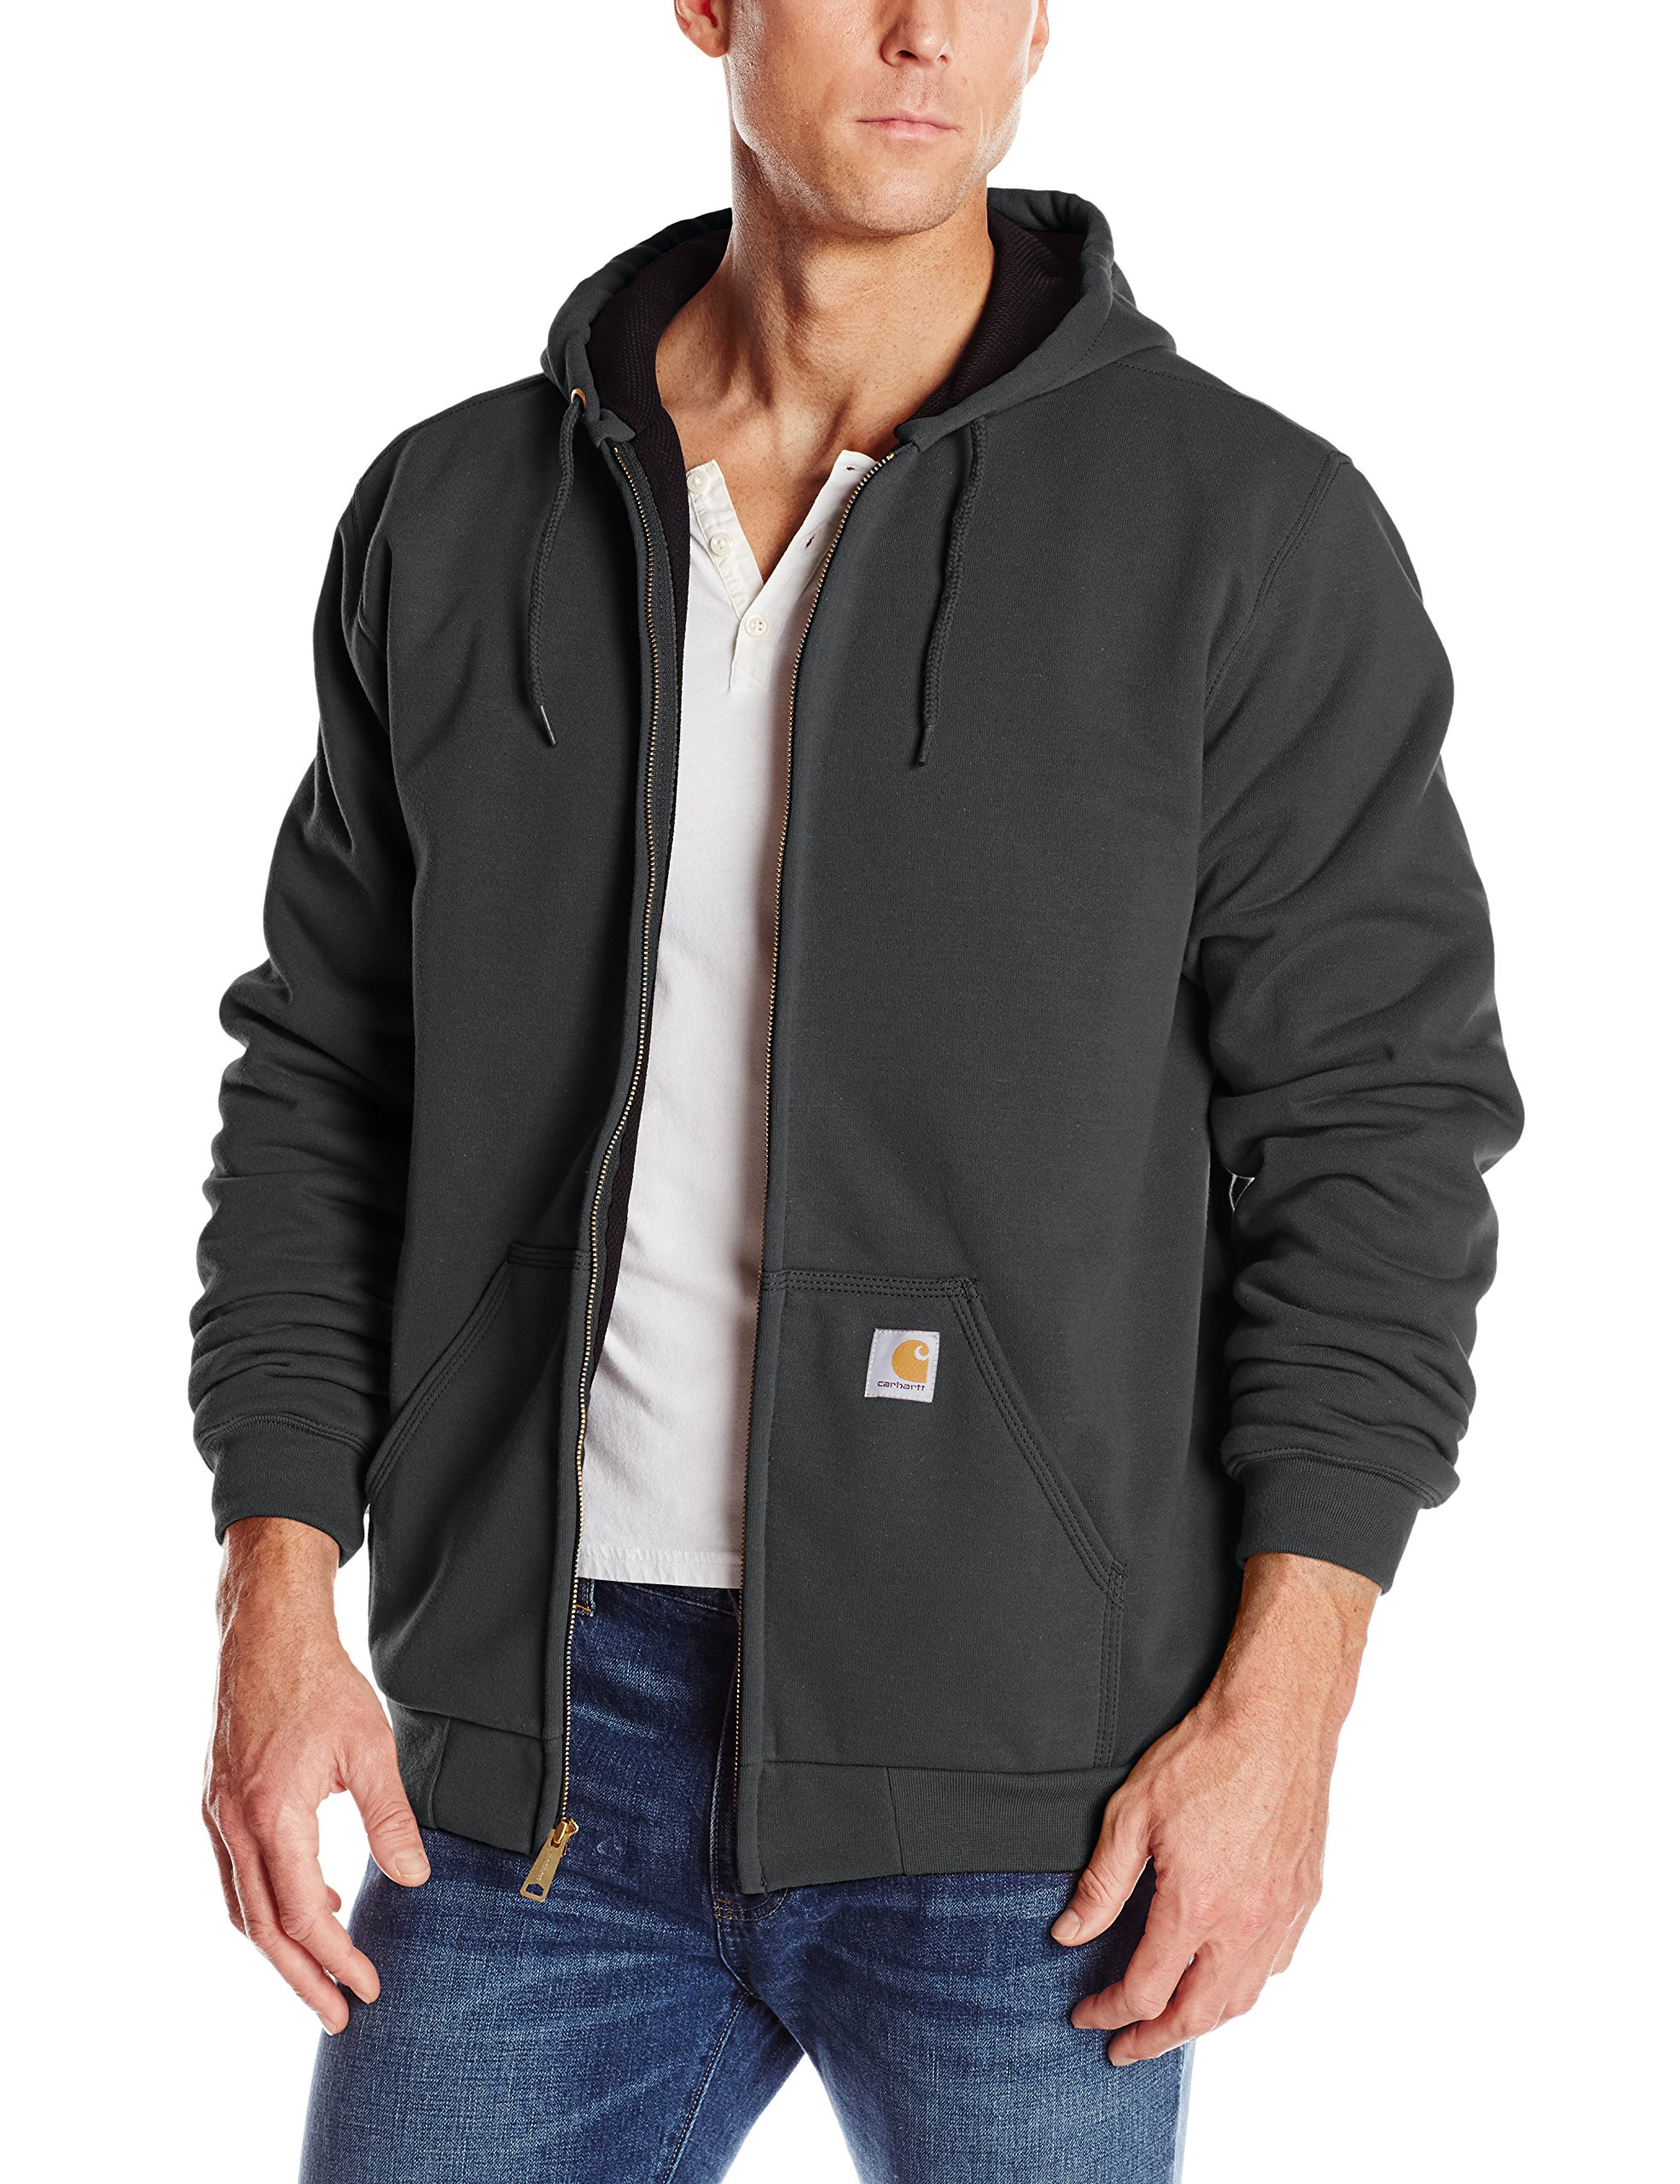 Carhartt Rutland Thermal-Lined Hooded Zip-Front Sweatshirt, Black, XX-Large Tall by Carhartt